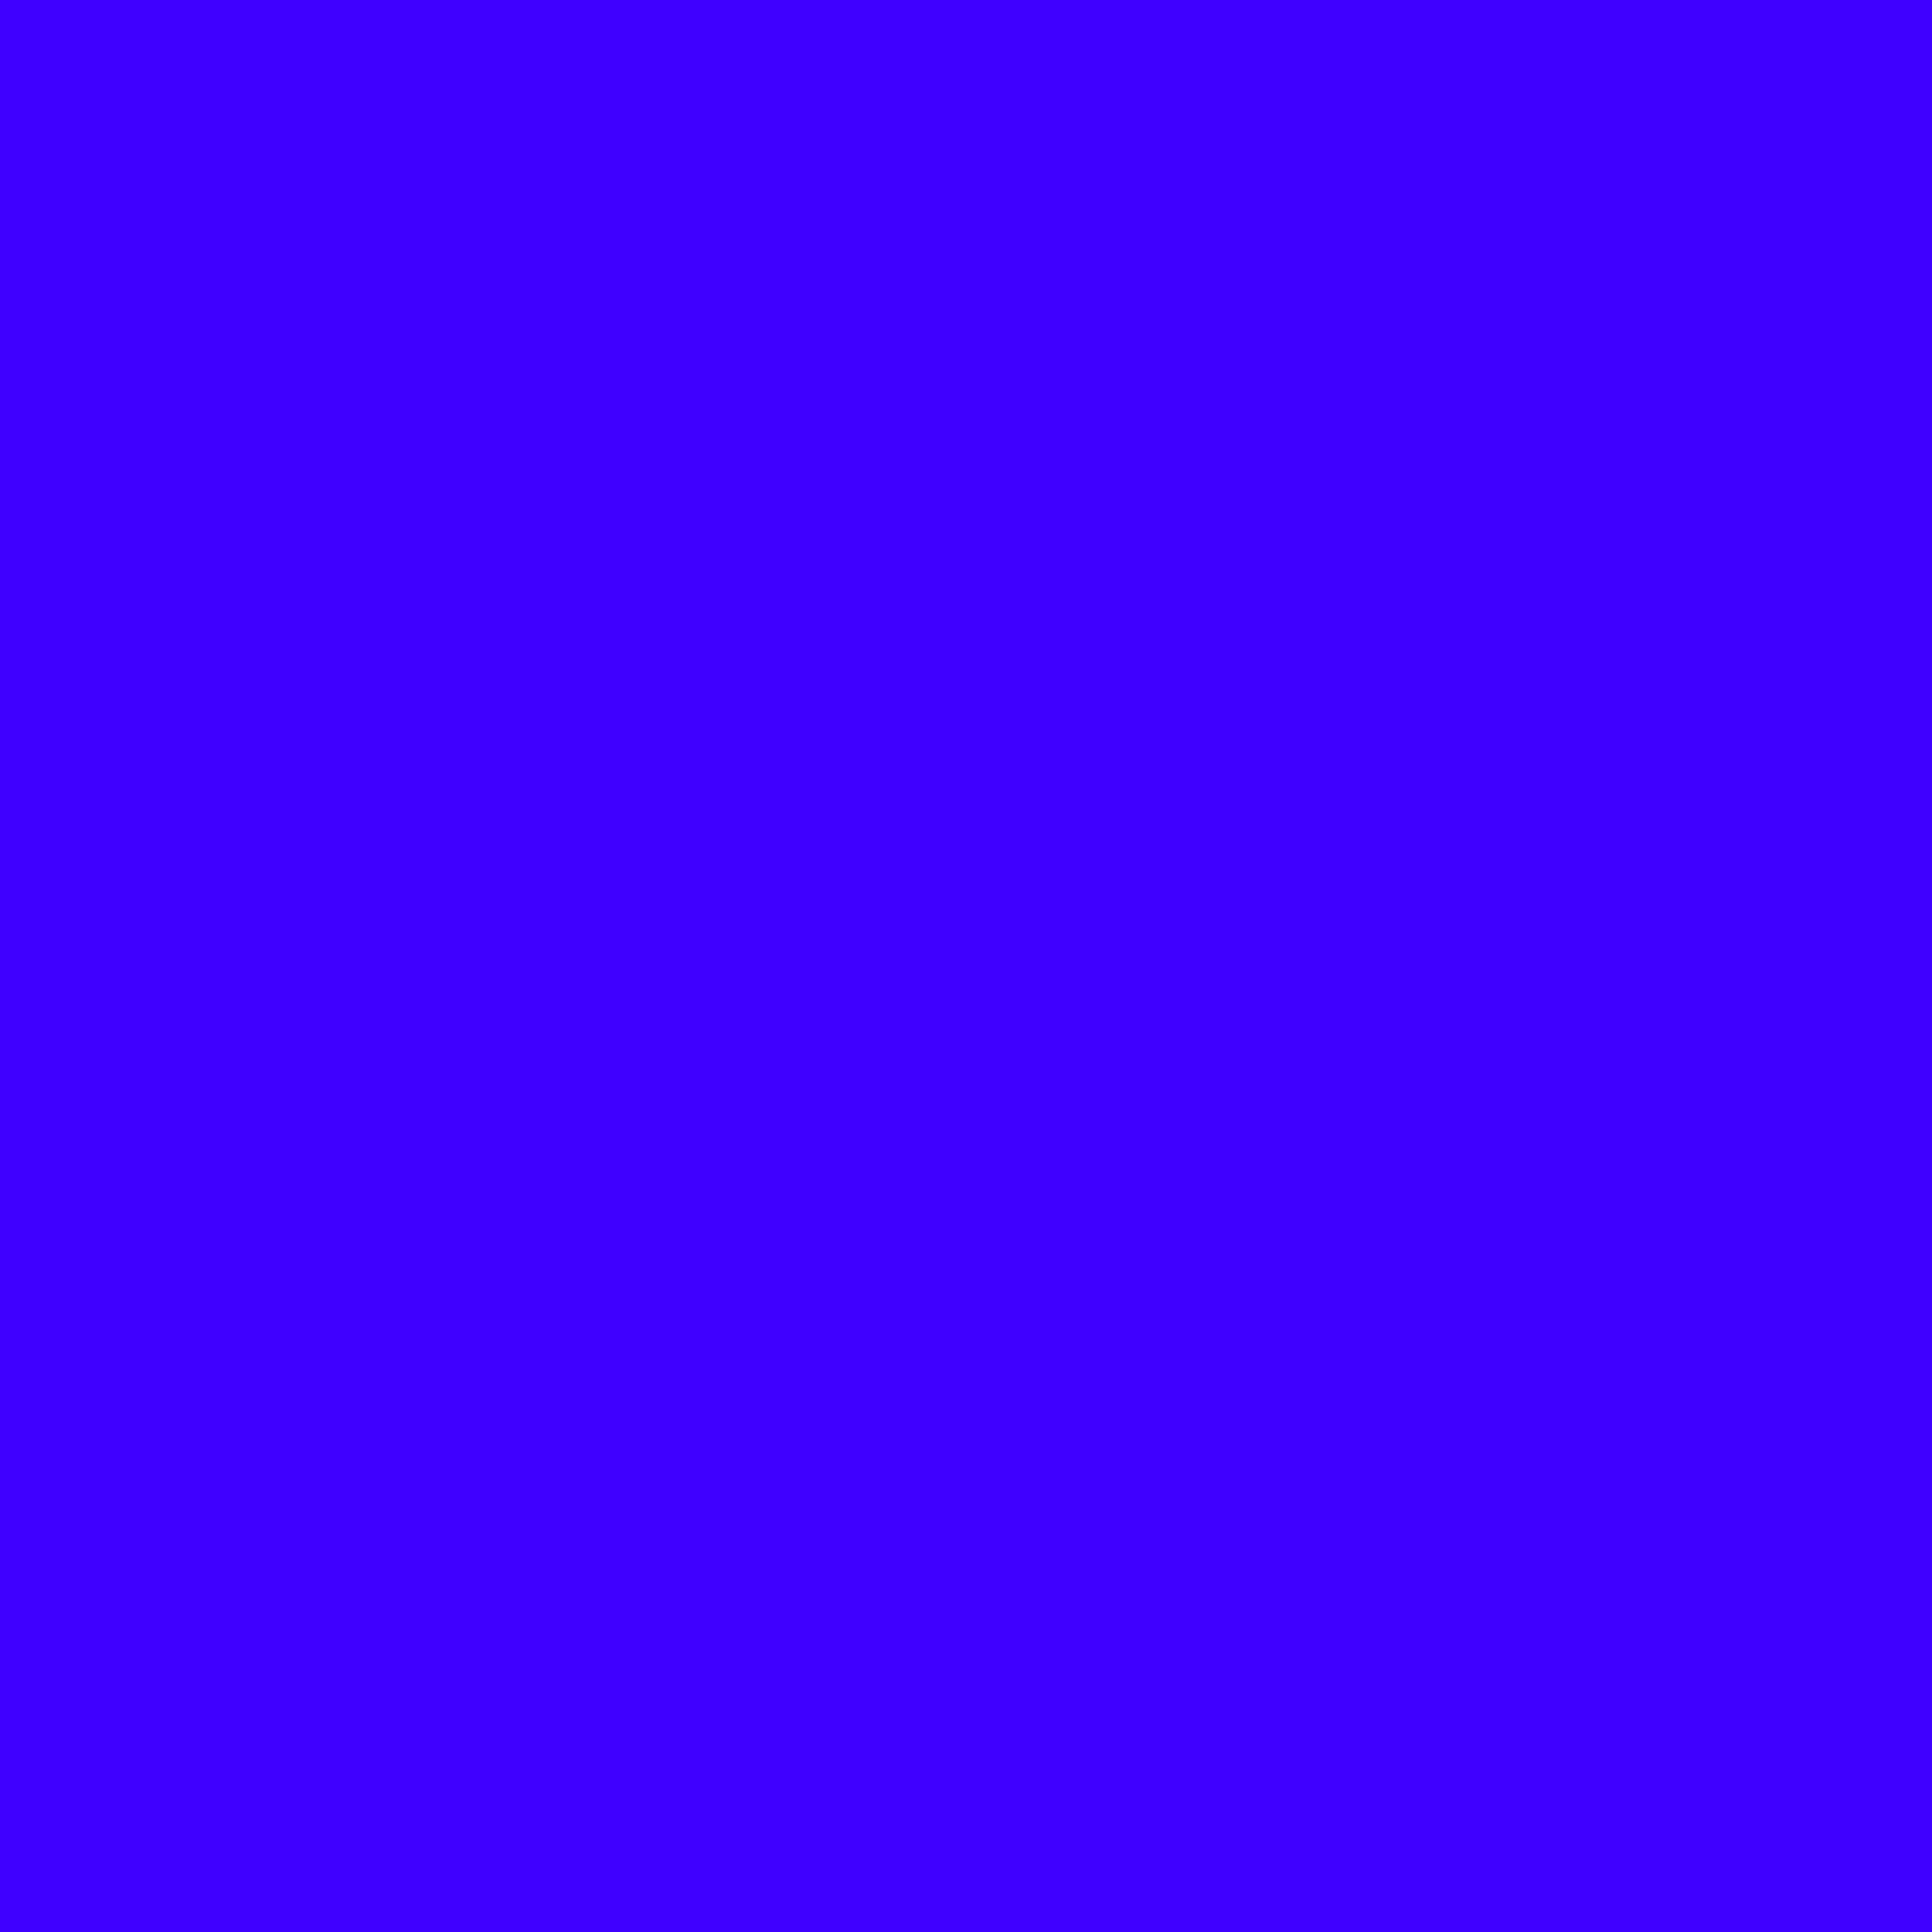 3600x3600 Electric Ultramarine Solid Color Background